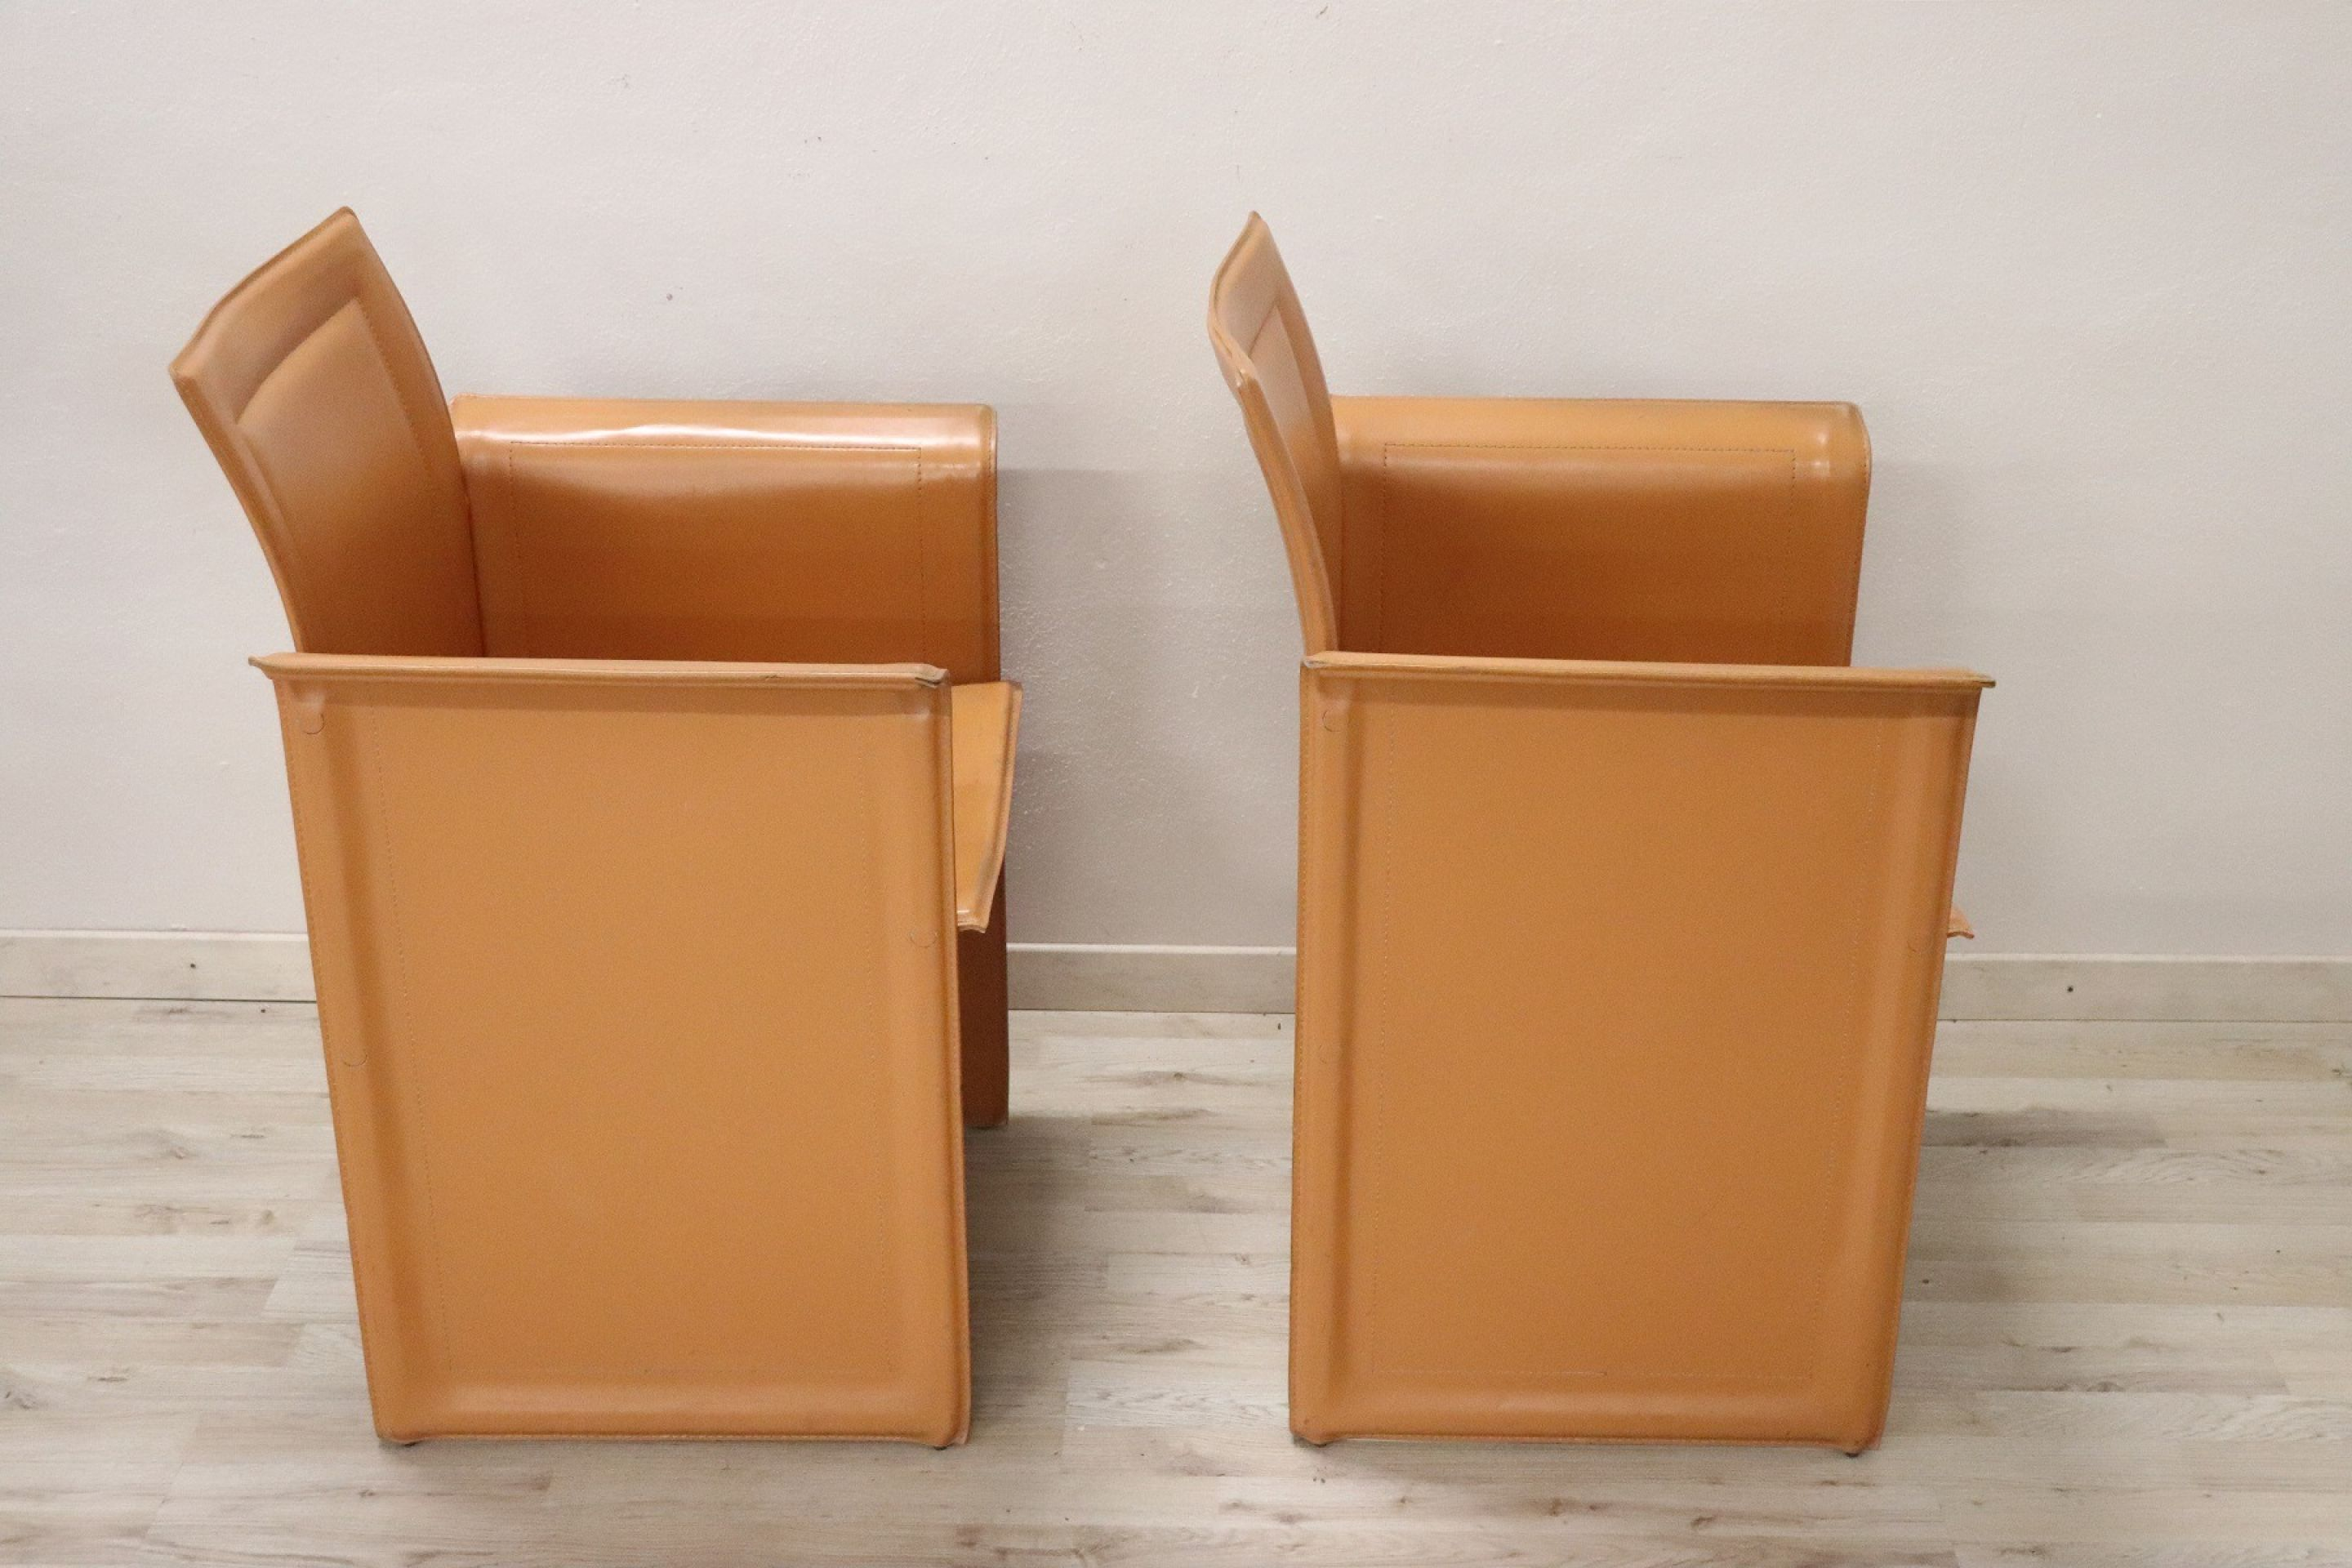 Italian Design Korium Leather Pair of Armchairs by Tito Agnoli for Matteo Grassi